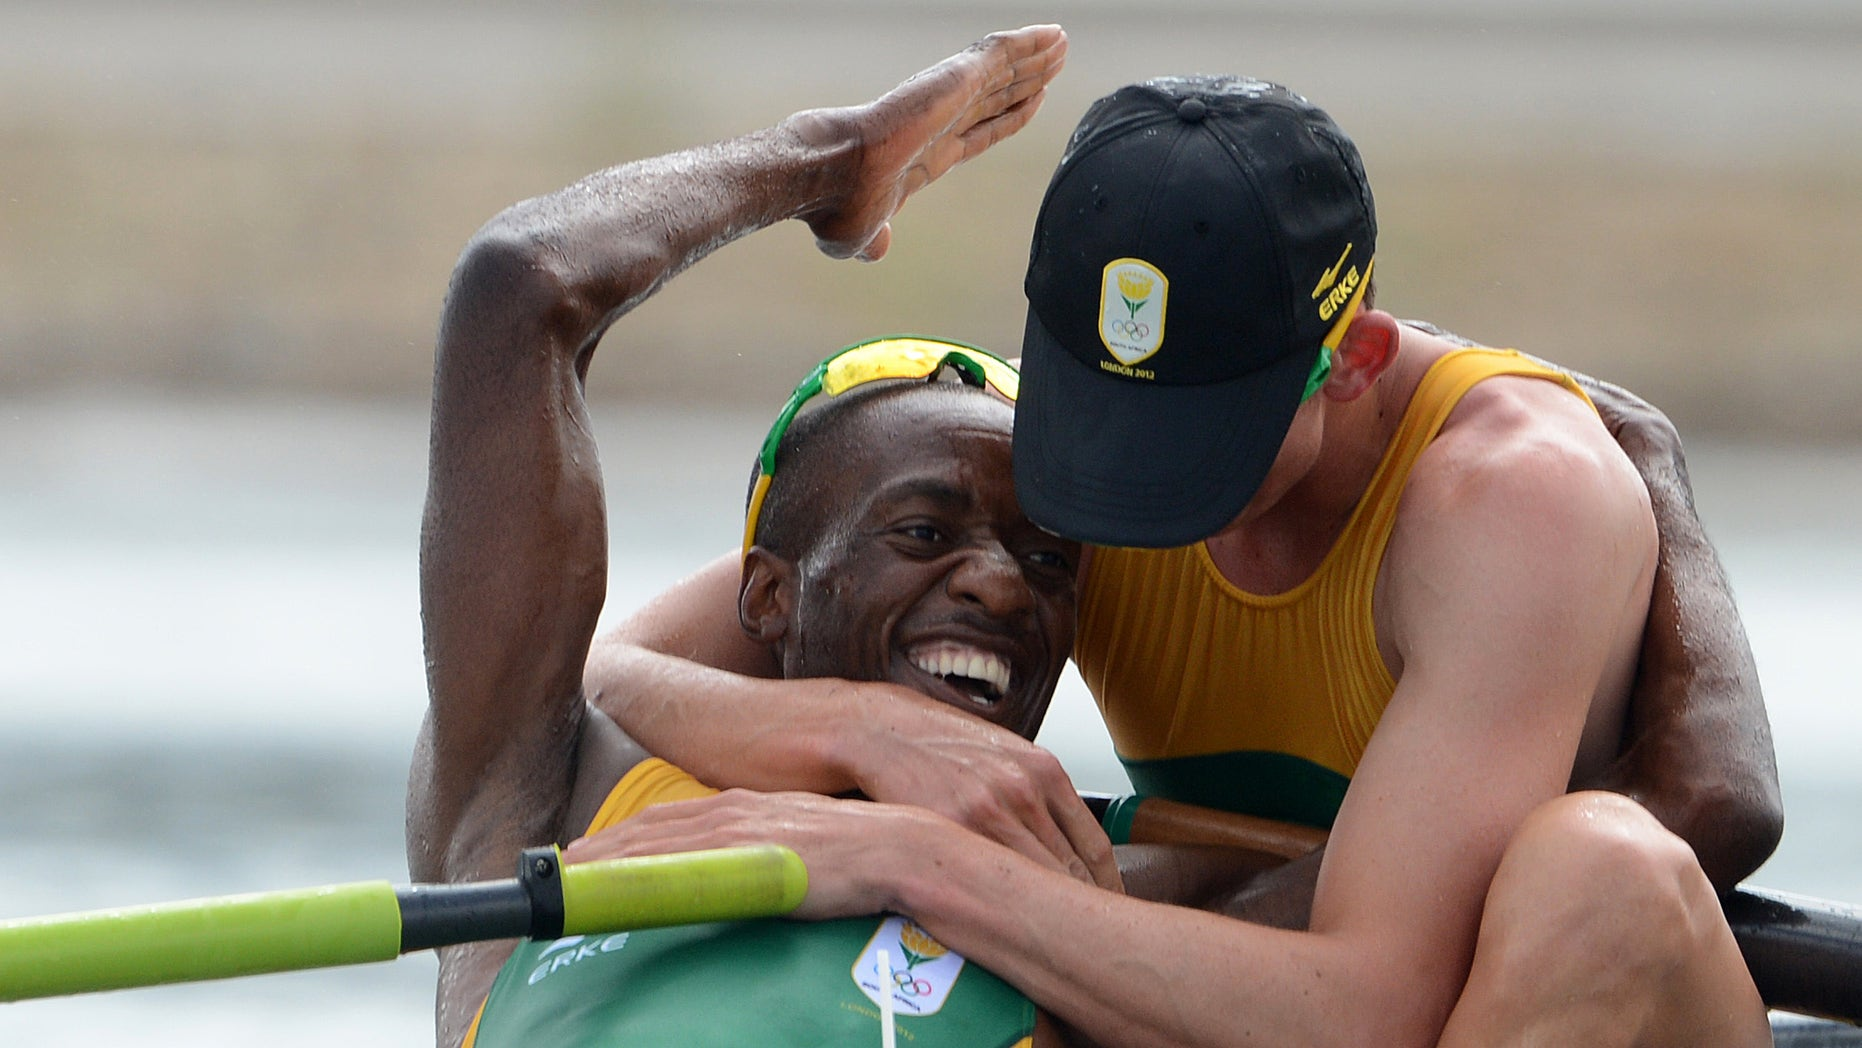 South Africa rowers Sizwe Ndlovu, left, and John Smith embrace after winning the gold medal in the men's lightweight four rowing final at the London 2012 Summer Olympics in Eton Dorney, near Windsor, England, on Thursday, Aug. 2, 2012. (AP Photo/Damien Meyer, Pool)